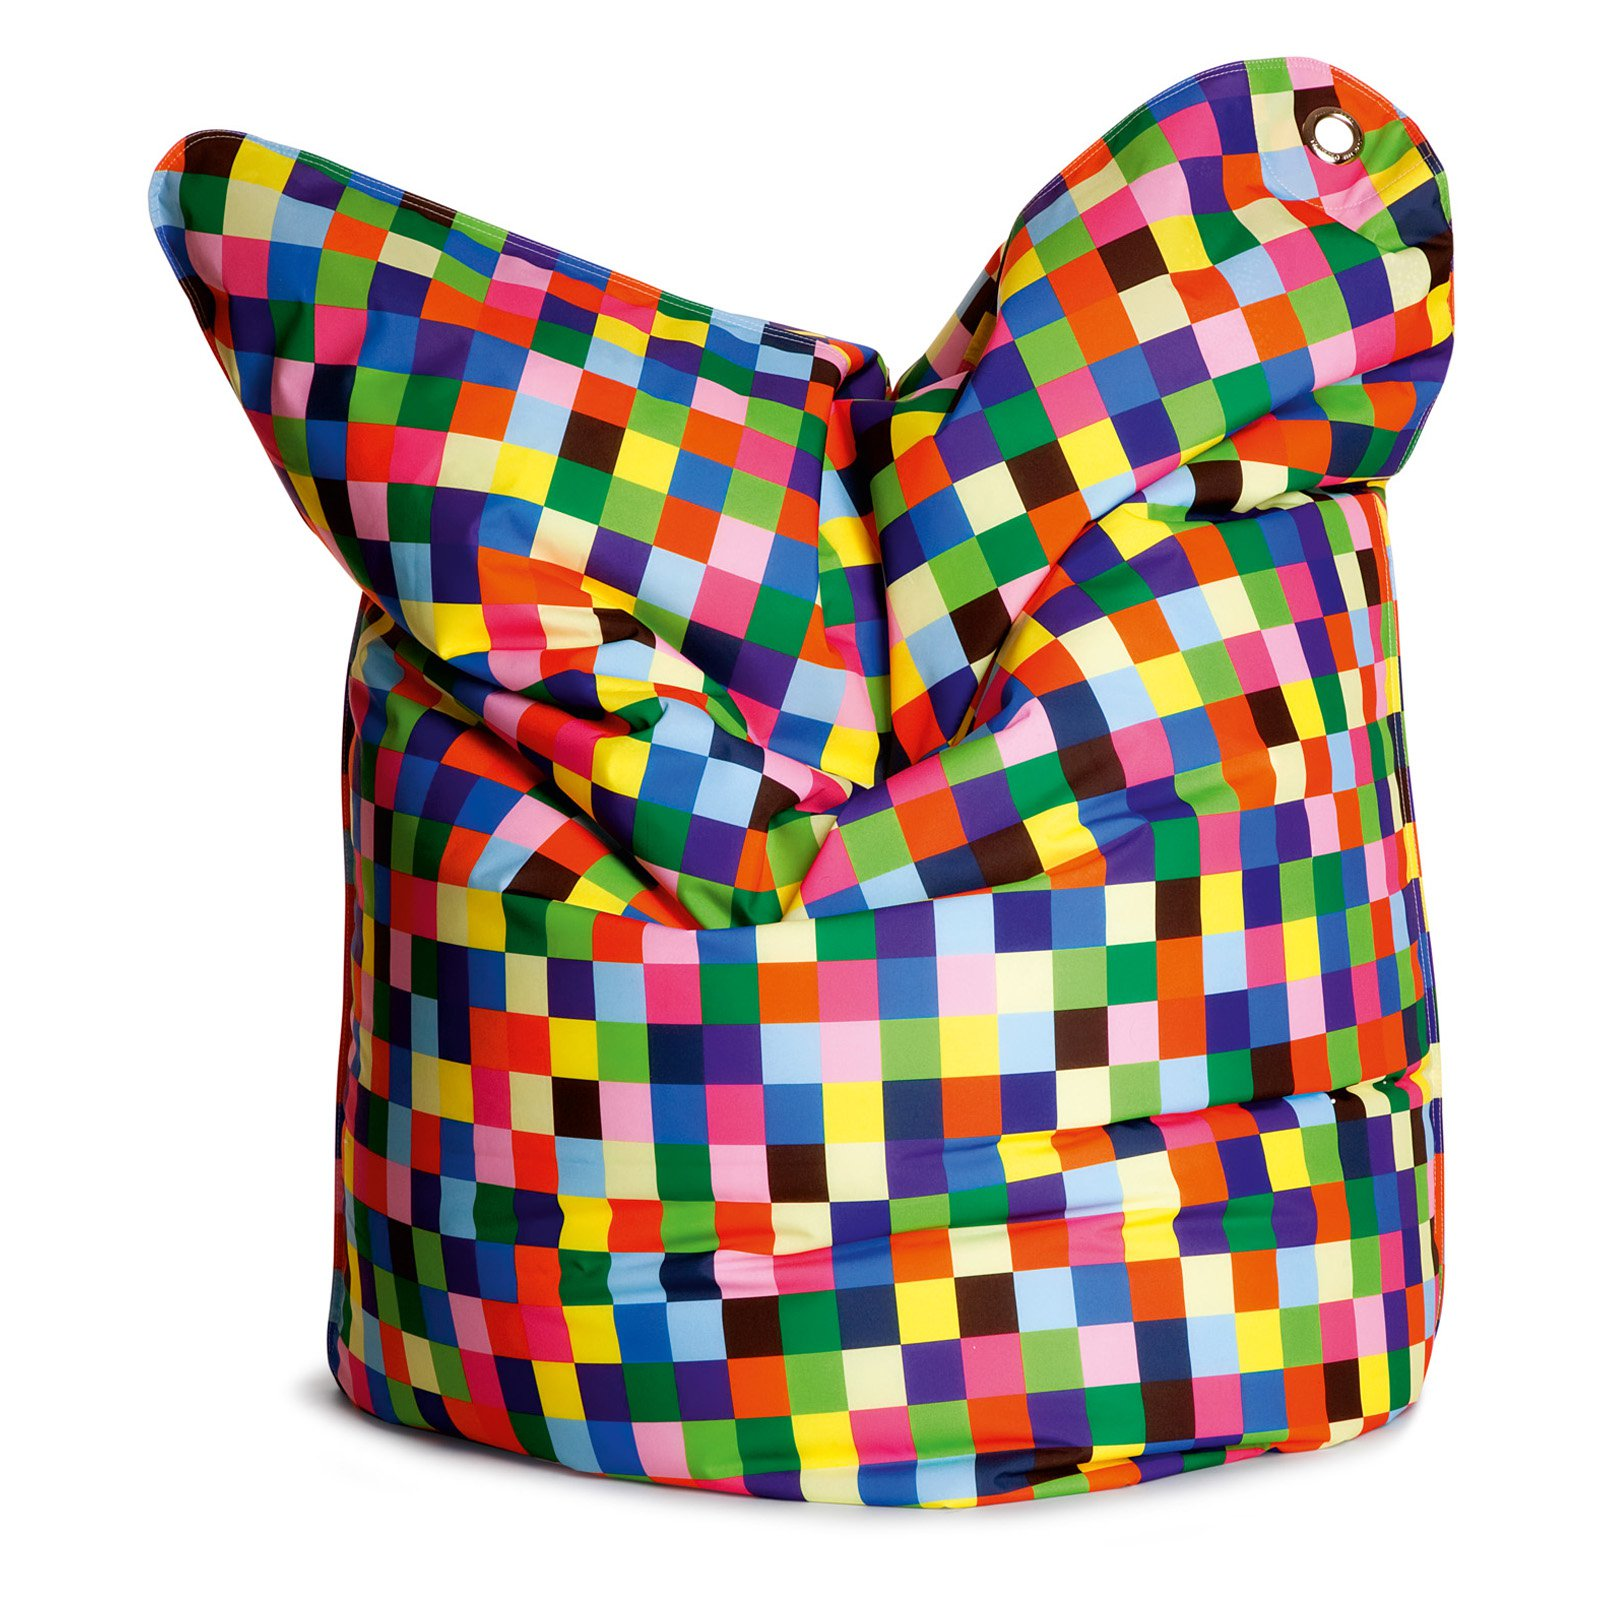 THE BULL Large Fashion Bean Bag Chair - Happy Pixels